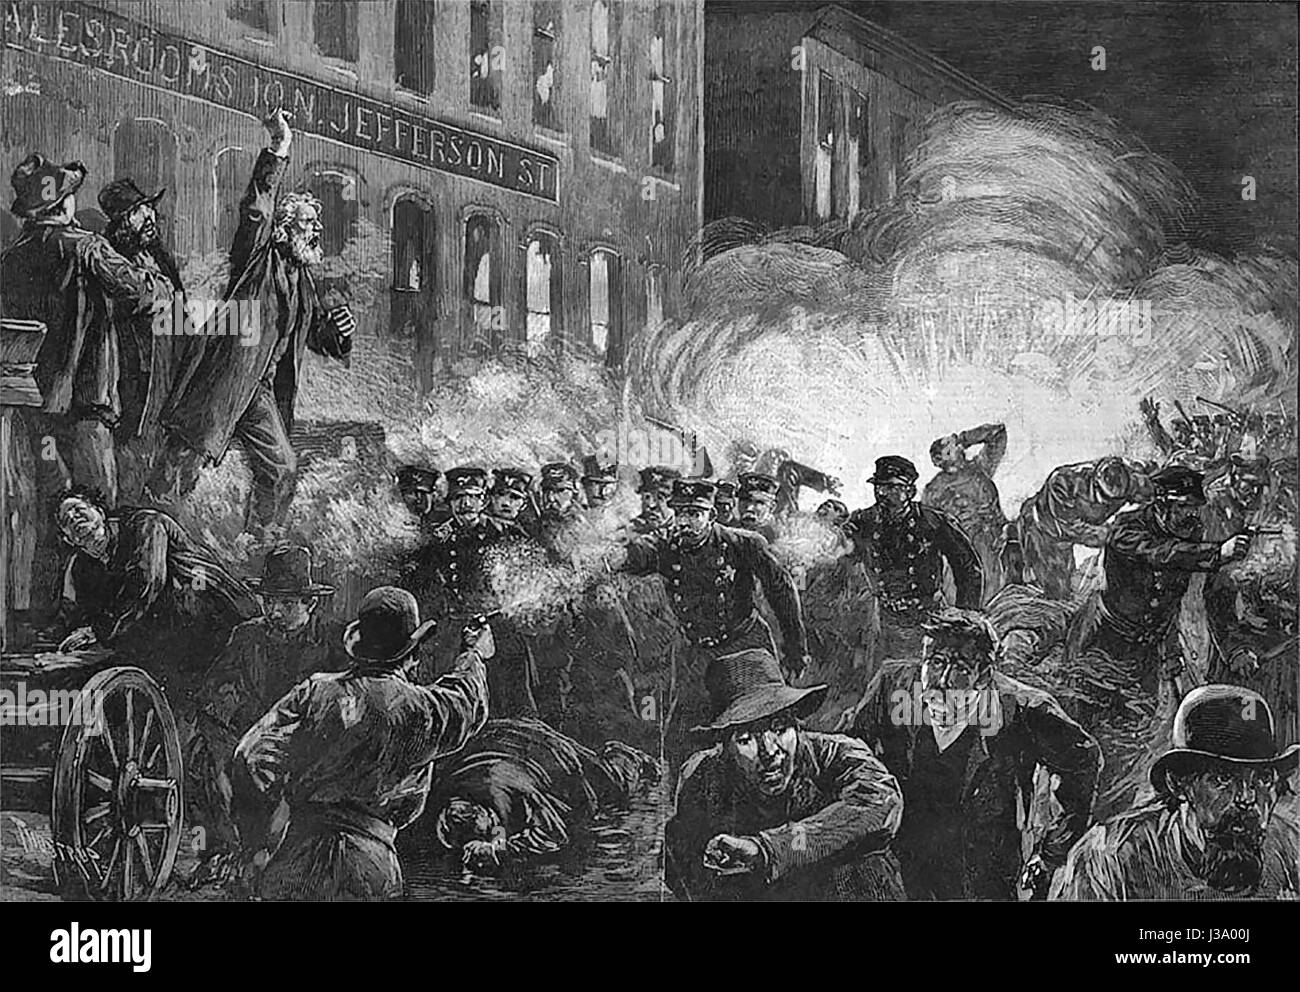 The Haymarket Riot - 15 May 1886. This 1886 engraving was the most widely reproduced image of the Haymarket affair. - Stock Image